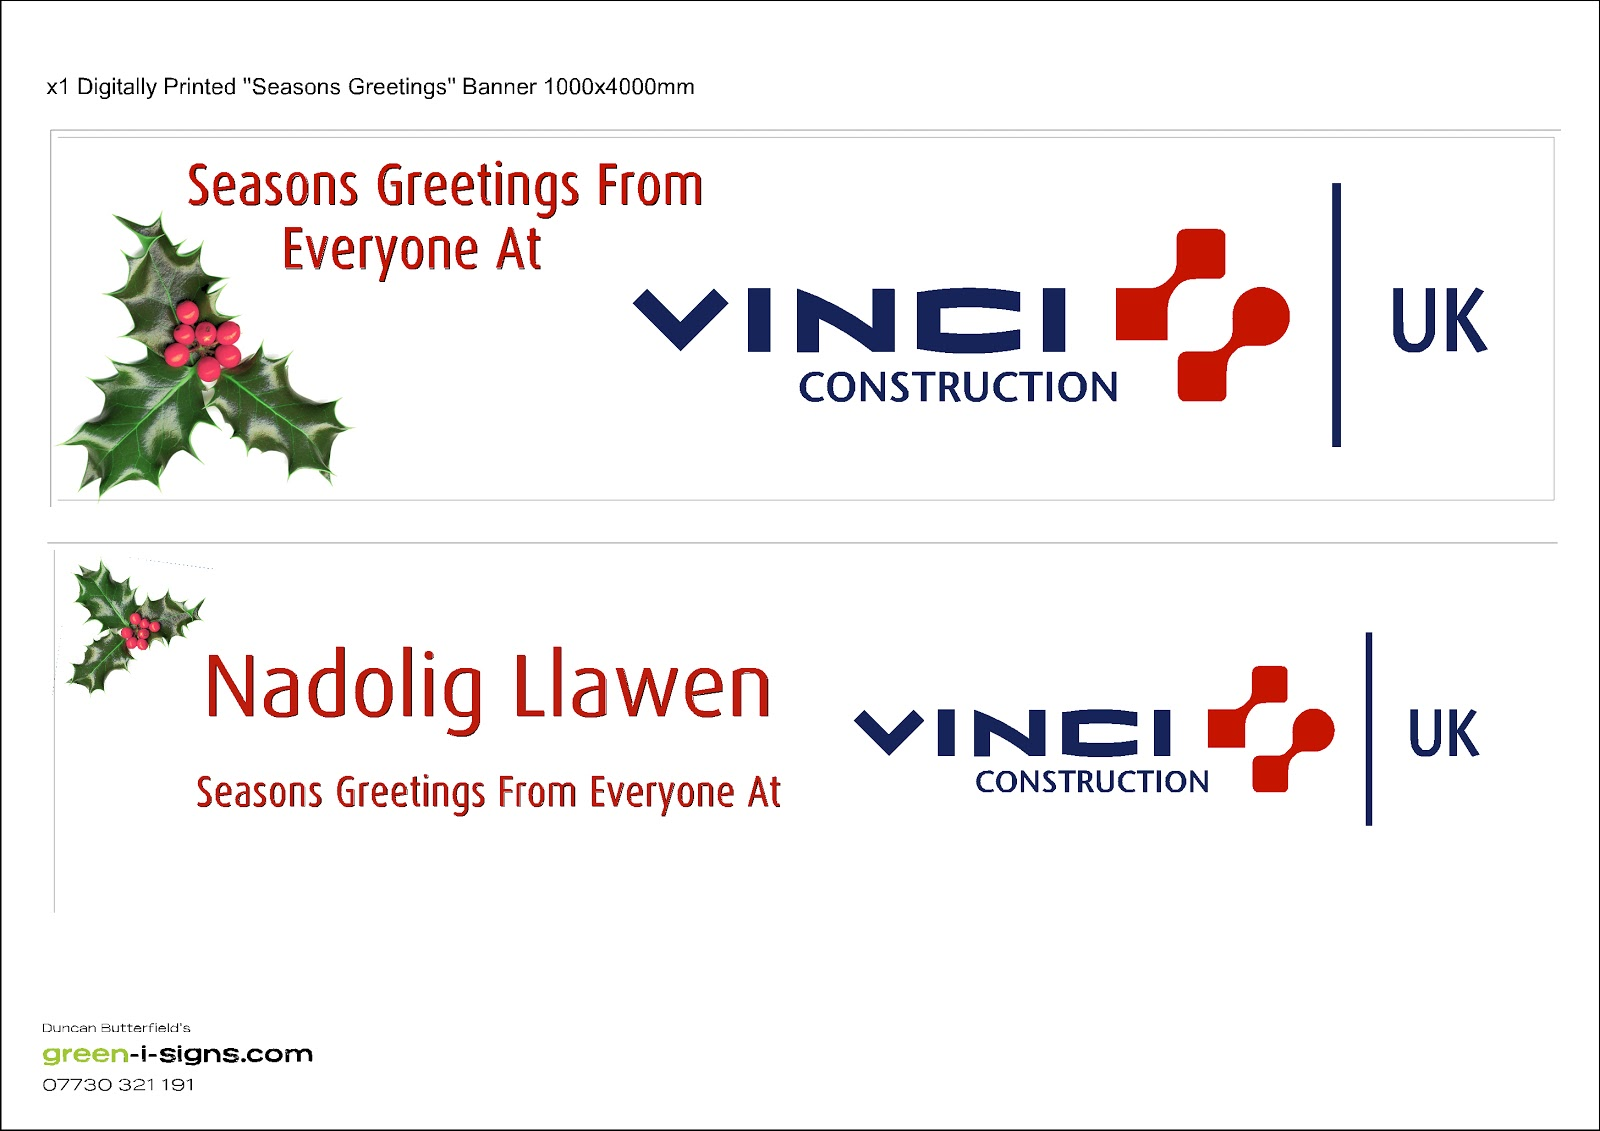 Vinci construction uk health and safety site signage as supplied vinci construction seasons greetings banner digitally printed vinyl banner or flo through mesh banner 1000x4000mm kristyandbryce Choice Image